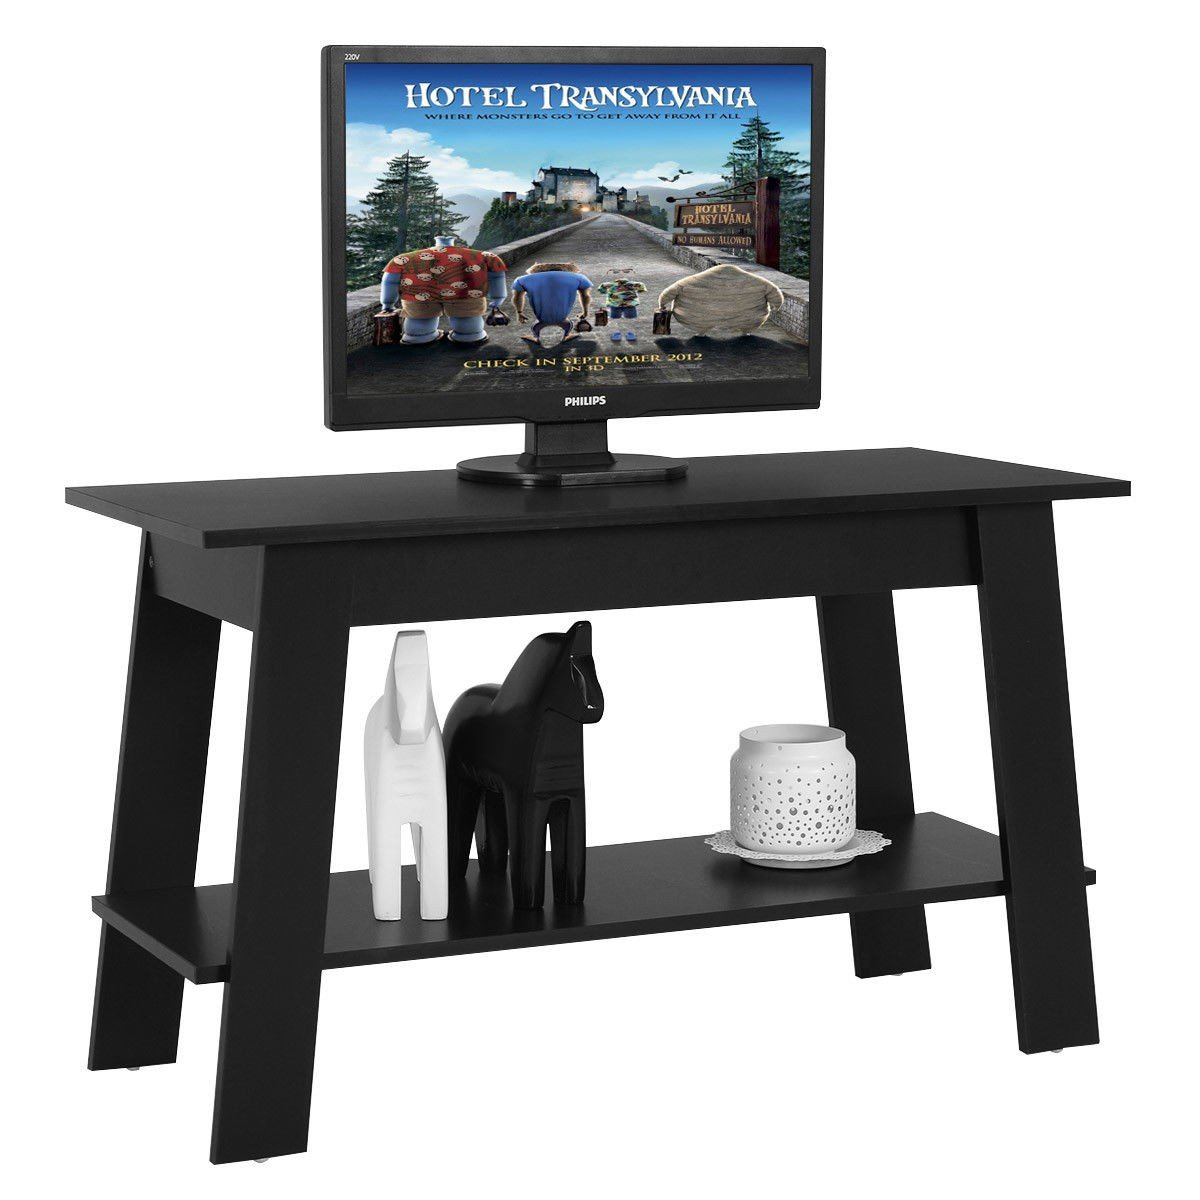 2 Tier Elevated Multipurpose Storage Console TV Stand - By Choice Products